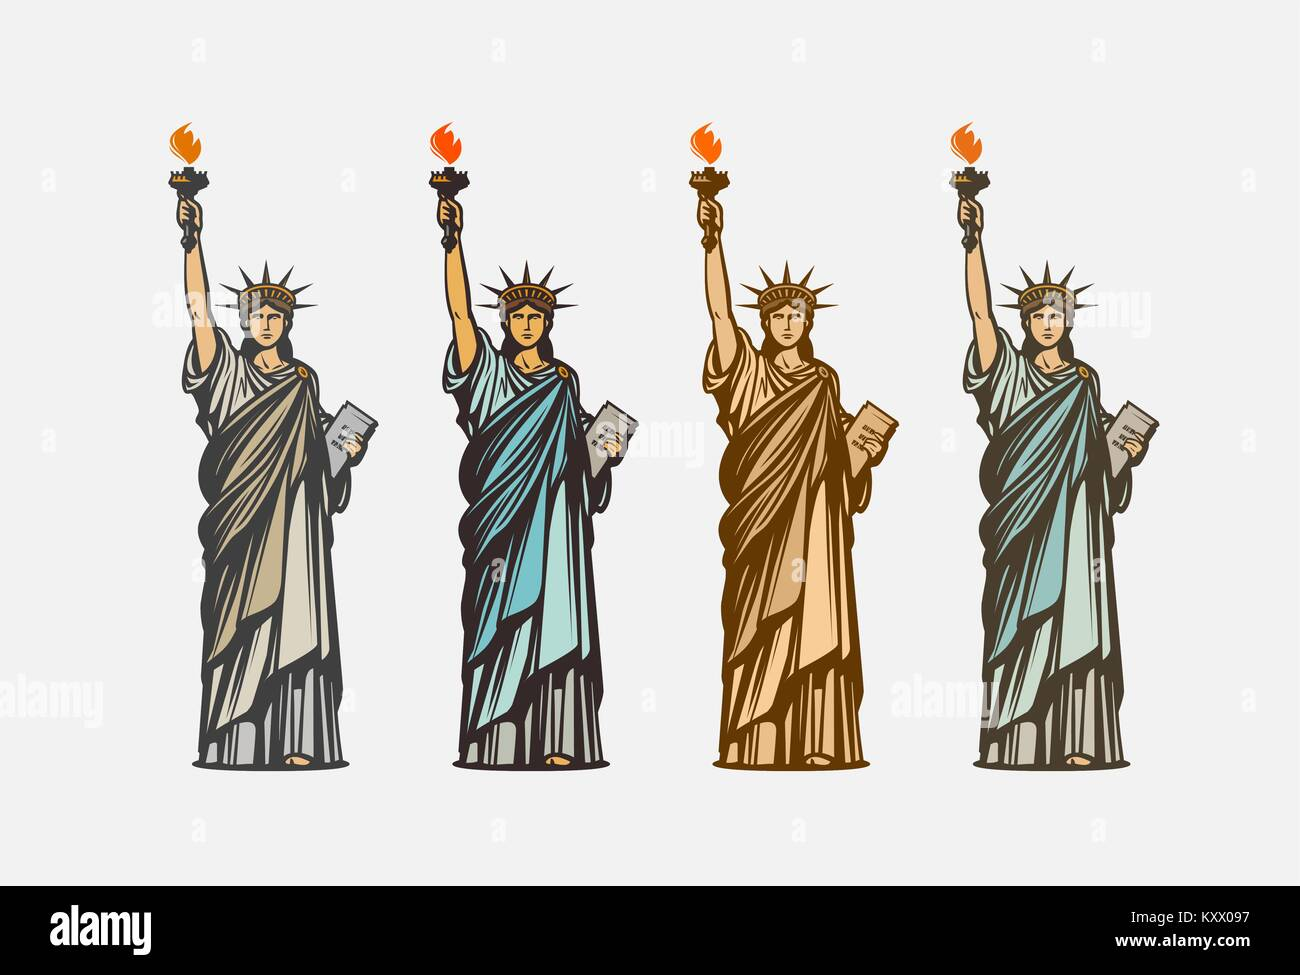 Statue liberty crown cartoon icon stock photos statue liberty famous statue of liberty symbol united states of america vector illustration stock image buycottarizona Gallery